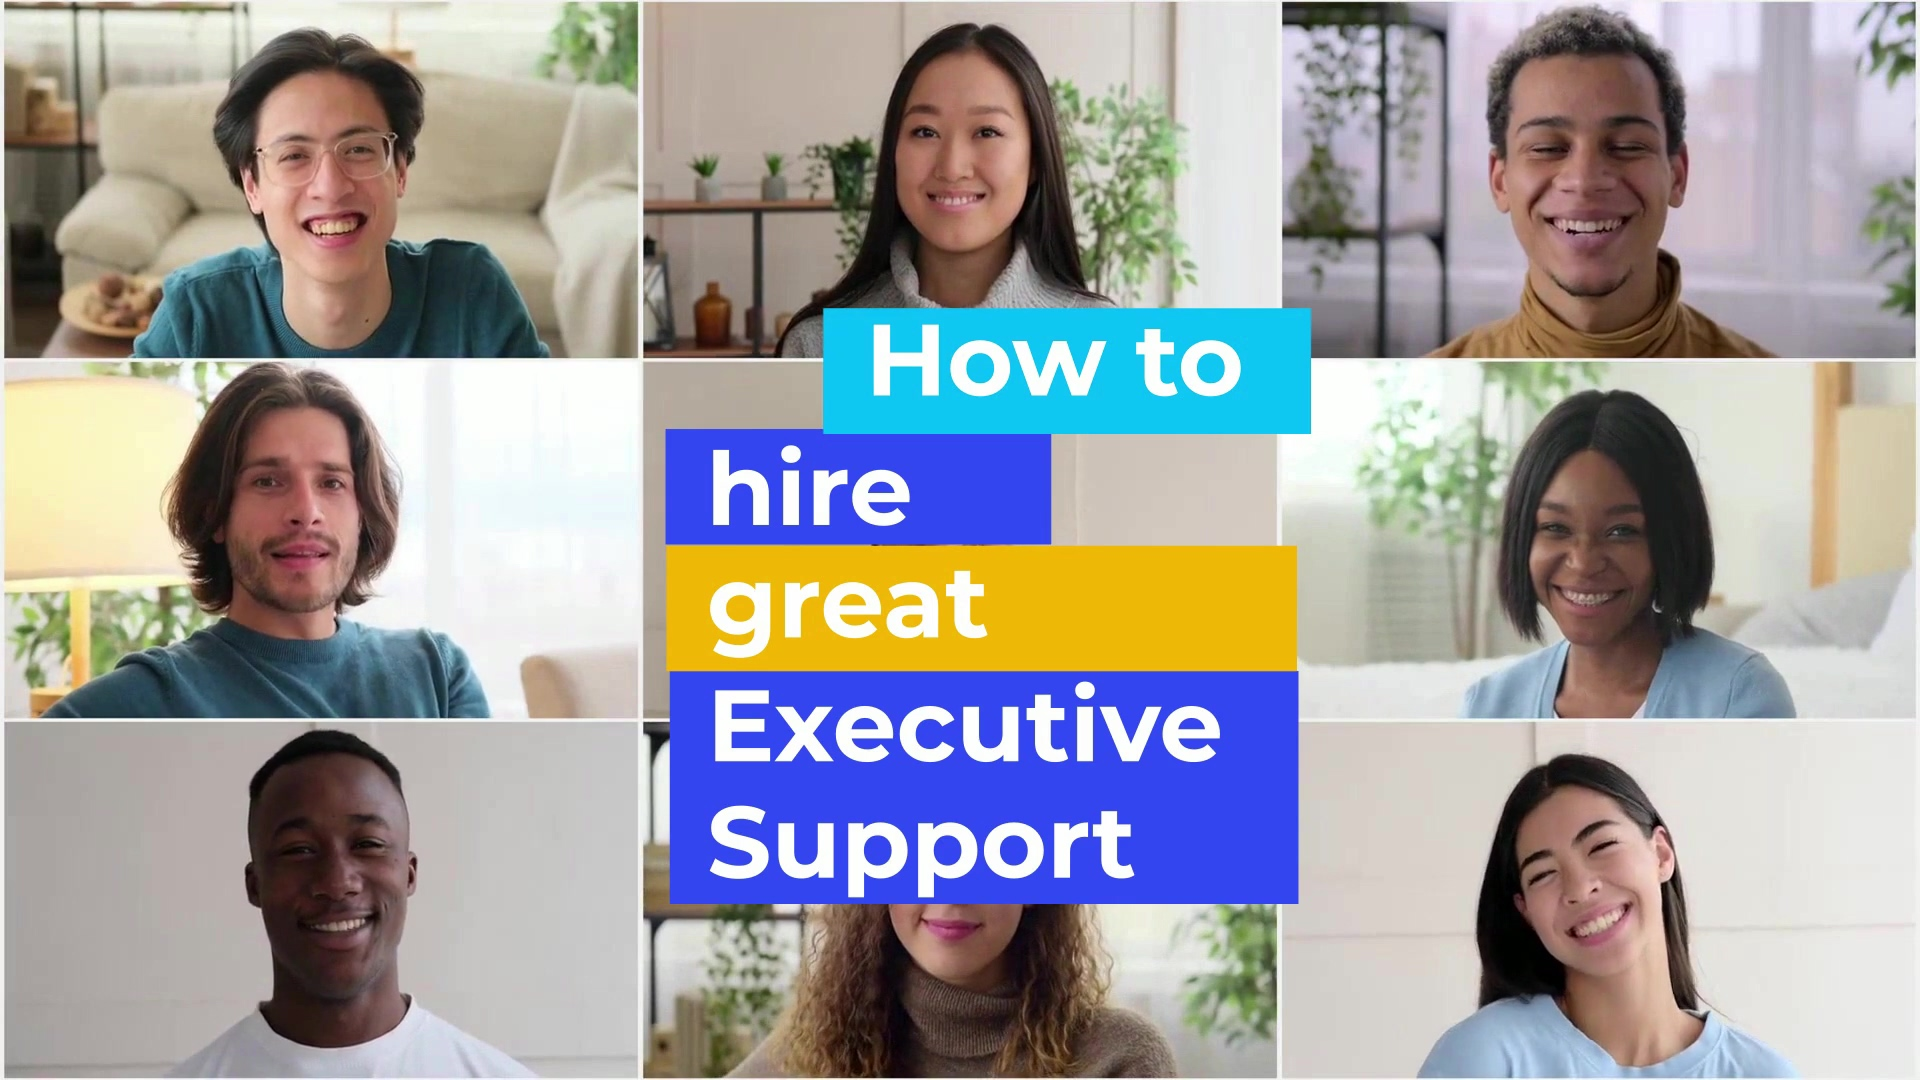 Quick Hiring Tips to Hire Executive Support